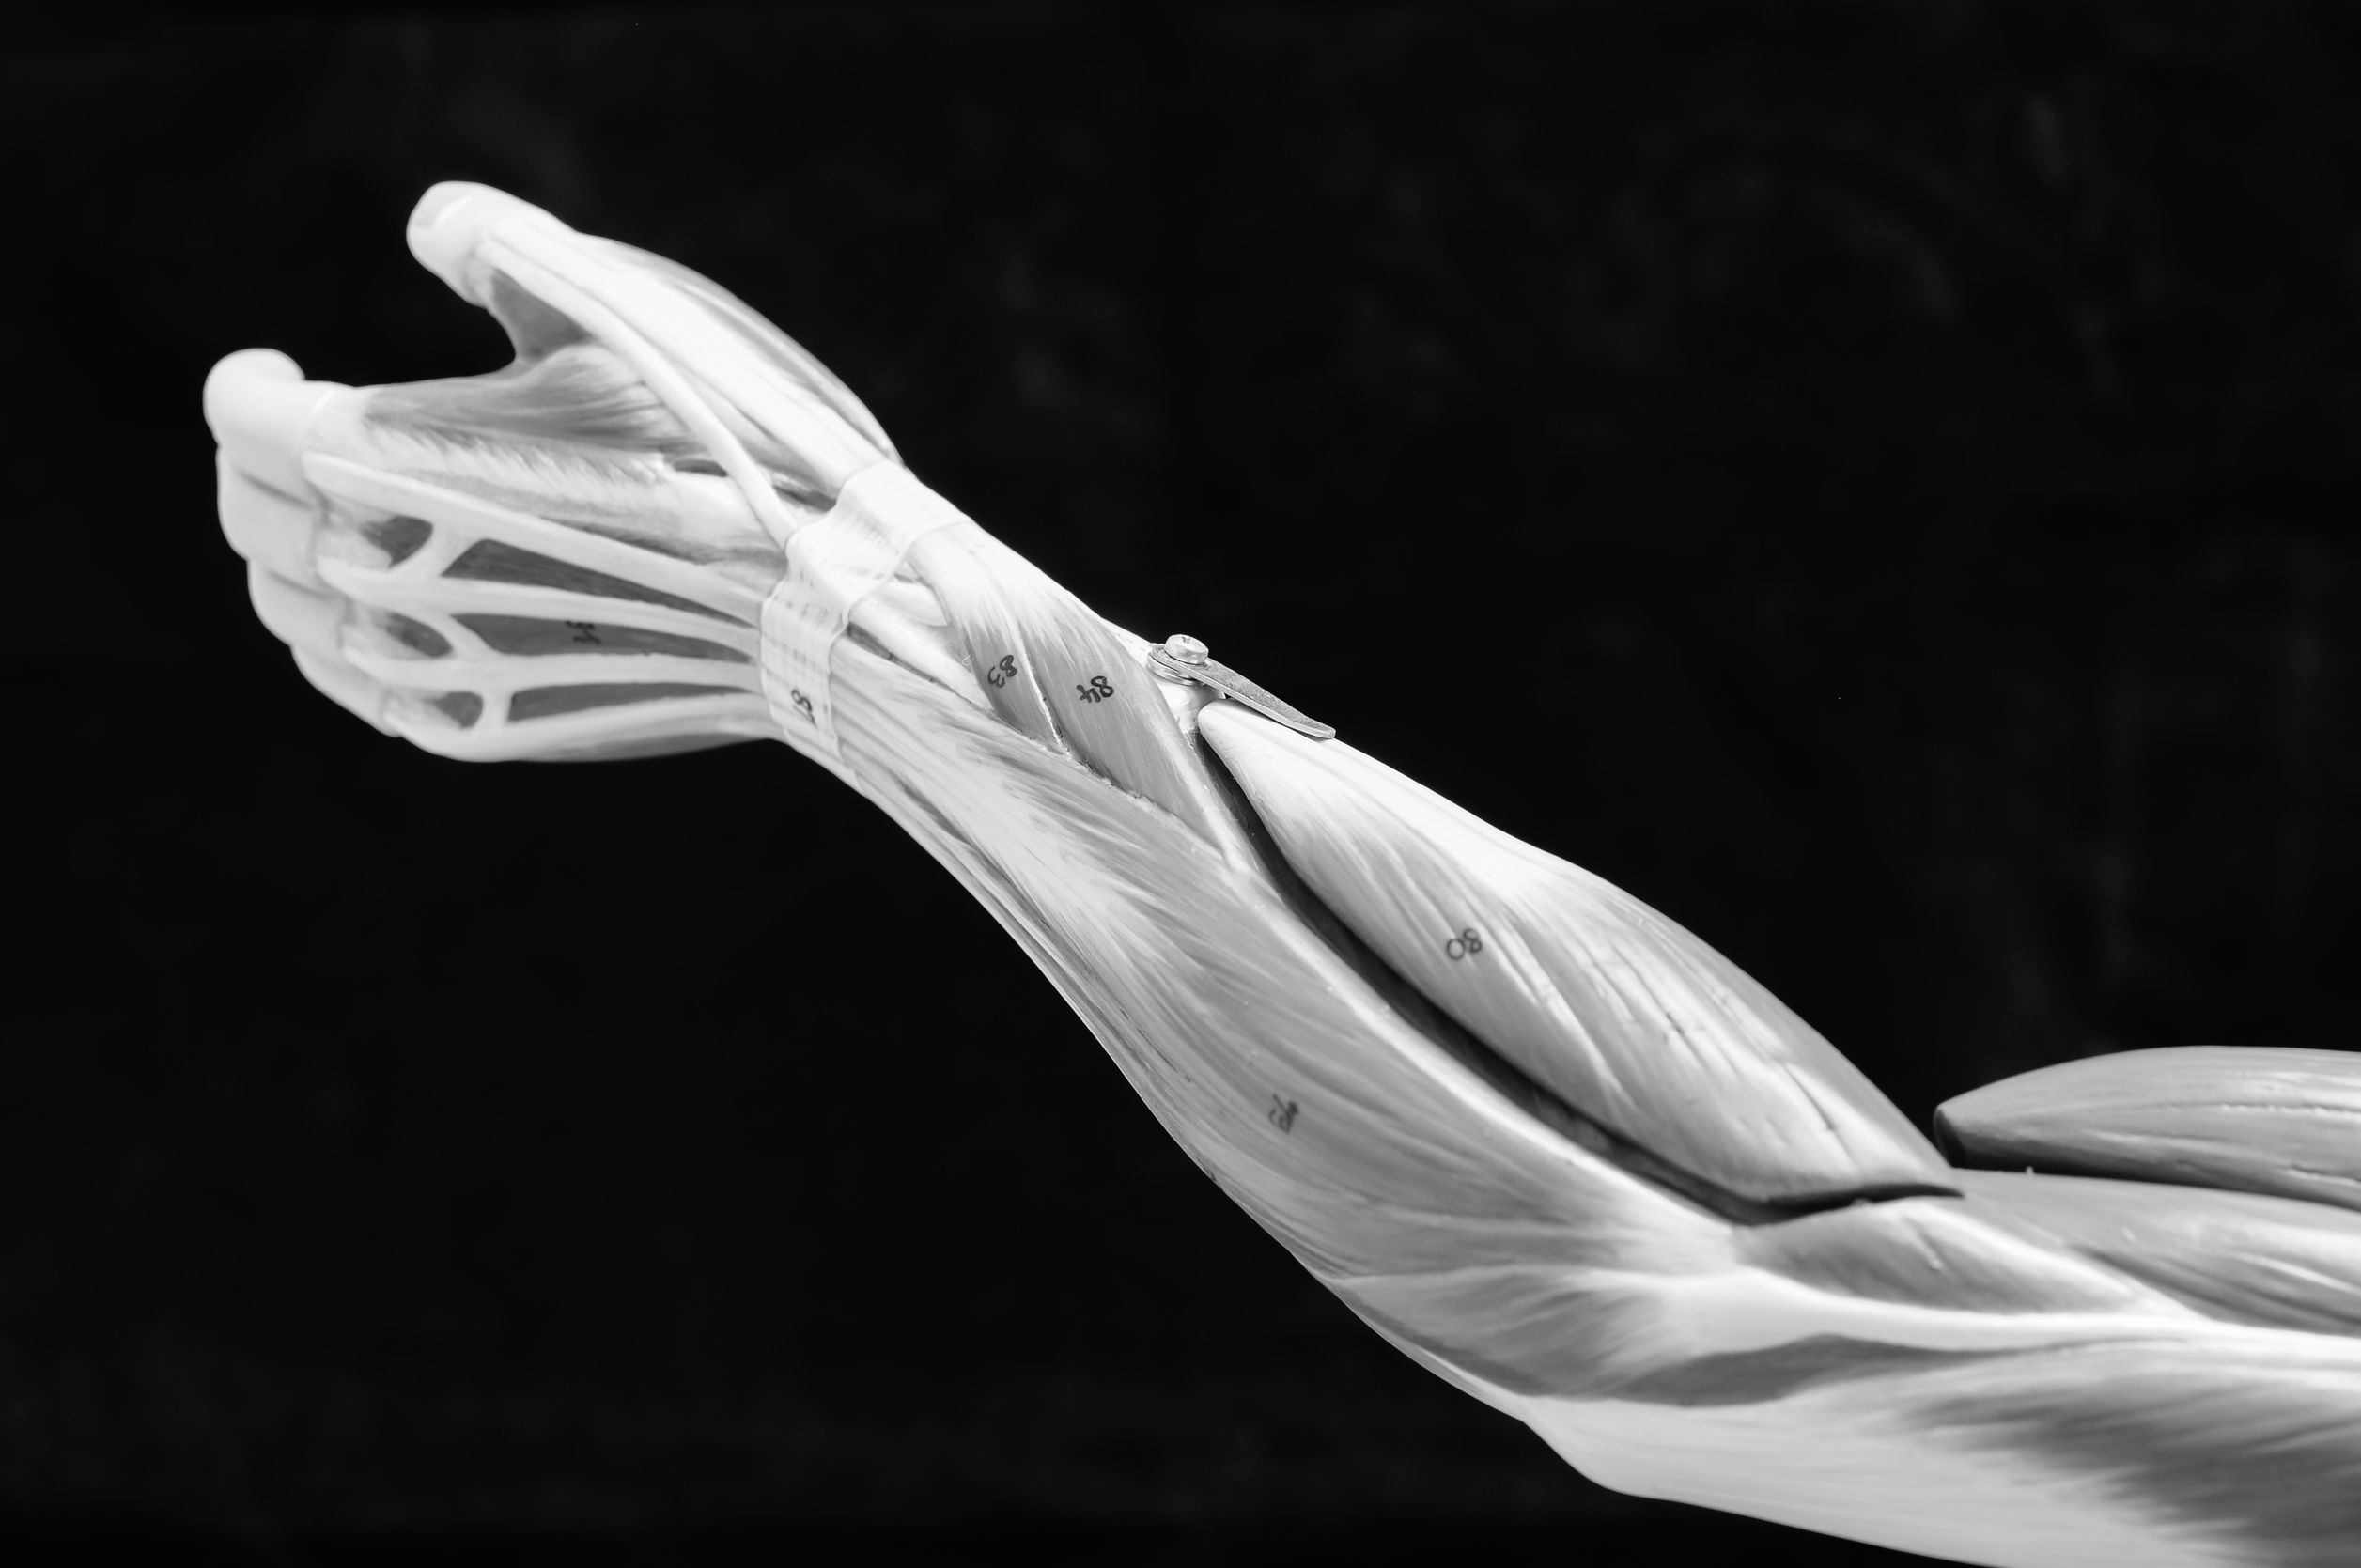 Anatomy of Upper Extremity - Lingering Pain After A Fall Or Sports Impact Upper Extremity Injury | https://physiologicnyc.com/physical-therapy/